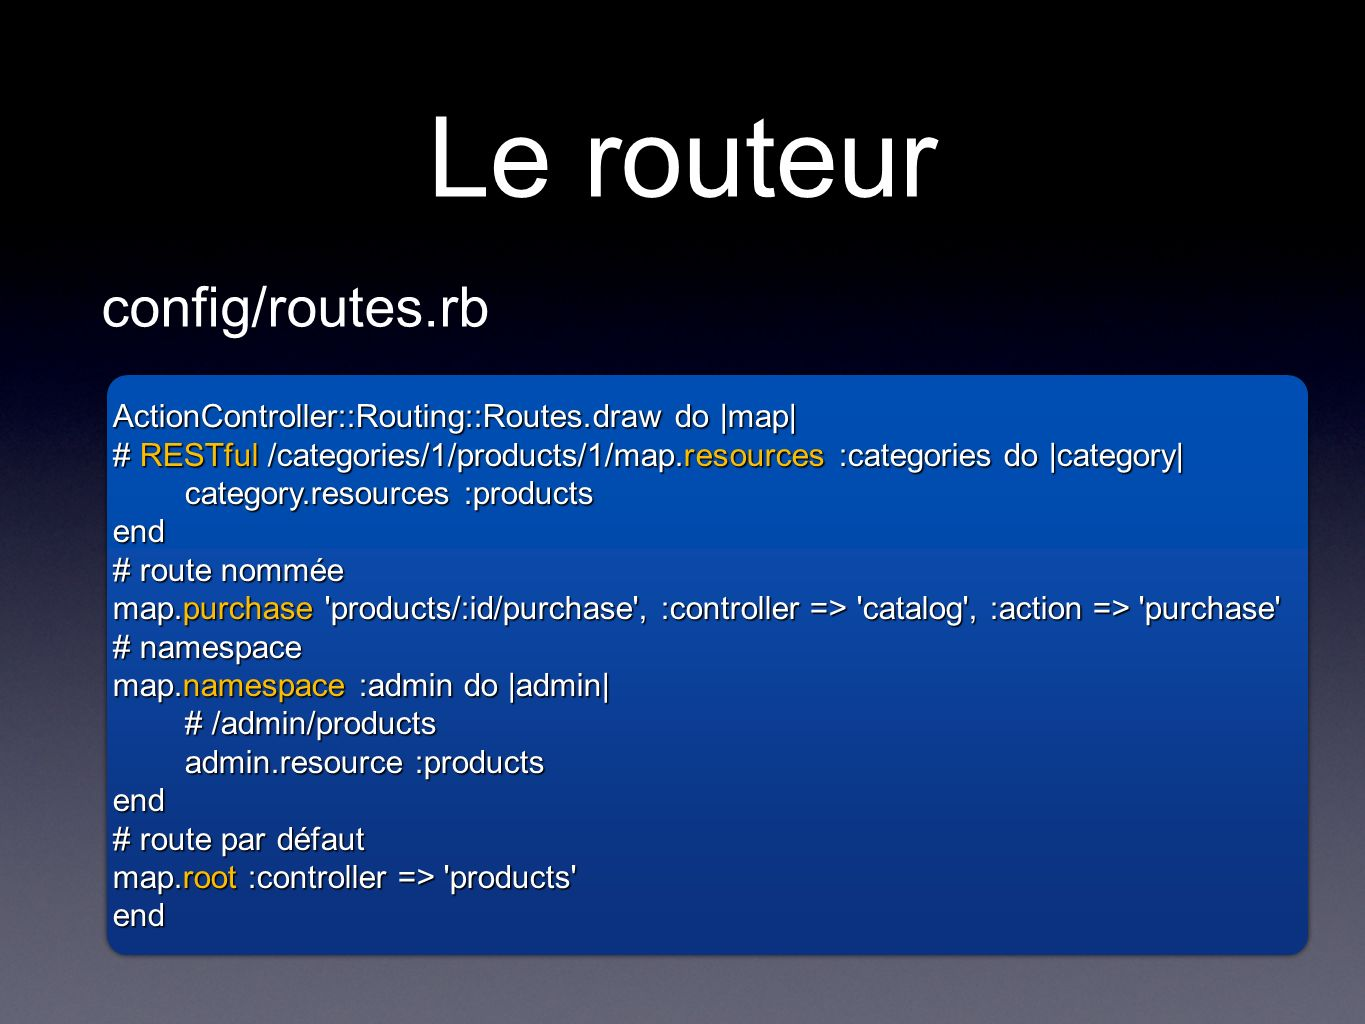 Le routeur config/routes.rb ActionController::Routing::Routes.draw do |map| # RESTful /categories/1/products/1/map.resources :categories do |category| category.resources :products end # route nommée map.purchase products/:id/purchase , :controller => catalog , :action => purchase # namespace map.namespace :admin do |admin| # /admin/products admin.resource :products end # route par défaut map.root :controller => products end ActionController::Routing::Routes.draw do |map| # RESTful /categories/1/products/1/map.resources :categories do |category| category.resources :products end # route nommée map.purchase products/:id/purchase , :controller => catalog , :action => purchase # namespace map.namespace :admin do |admin| # /admin/products admin.resource :products end # route par défaut map.root :controller => products end